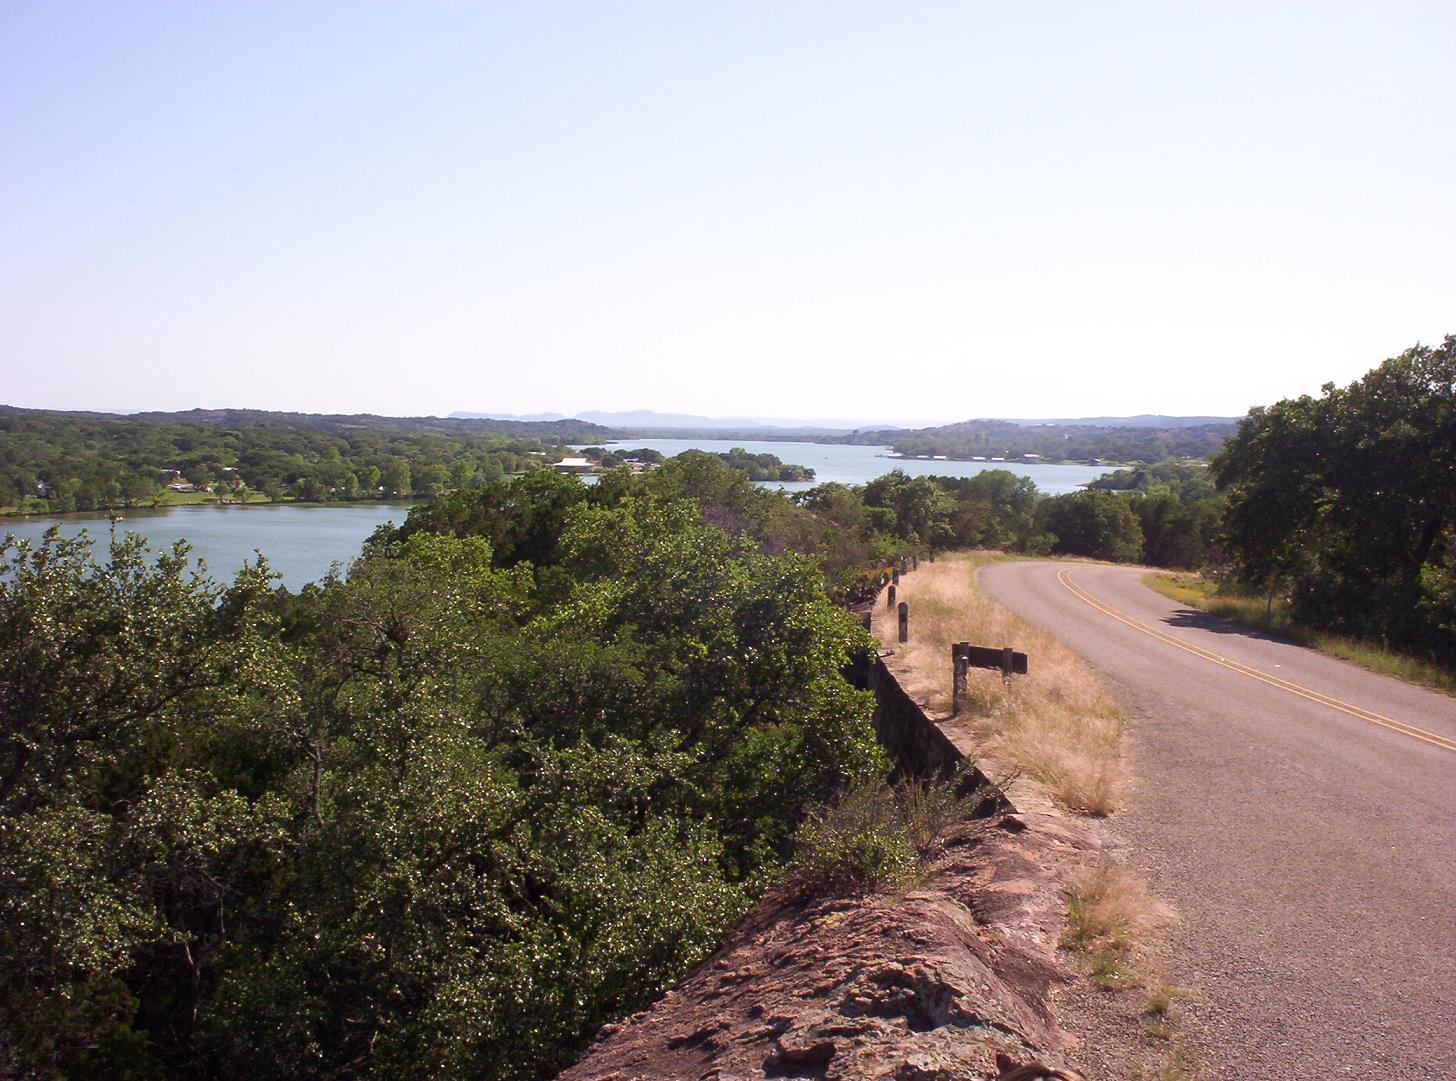 looking out over inks lake state park